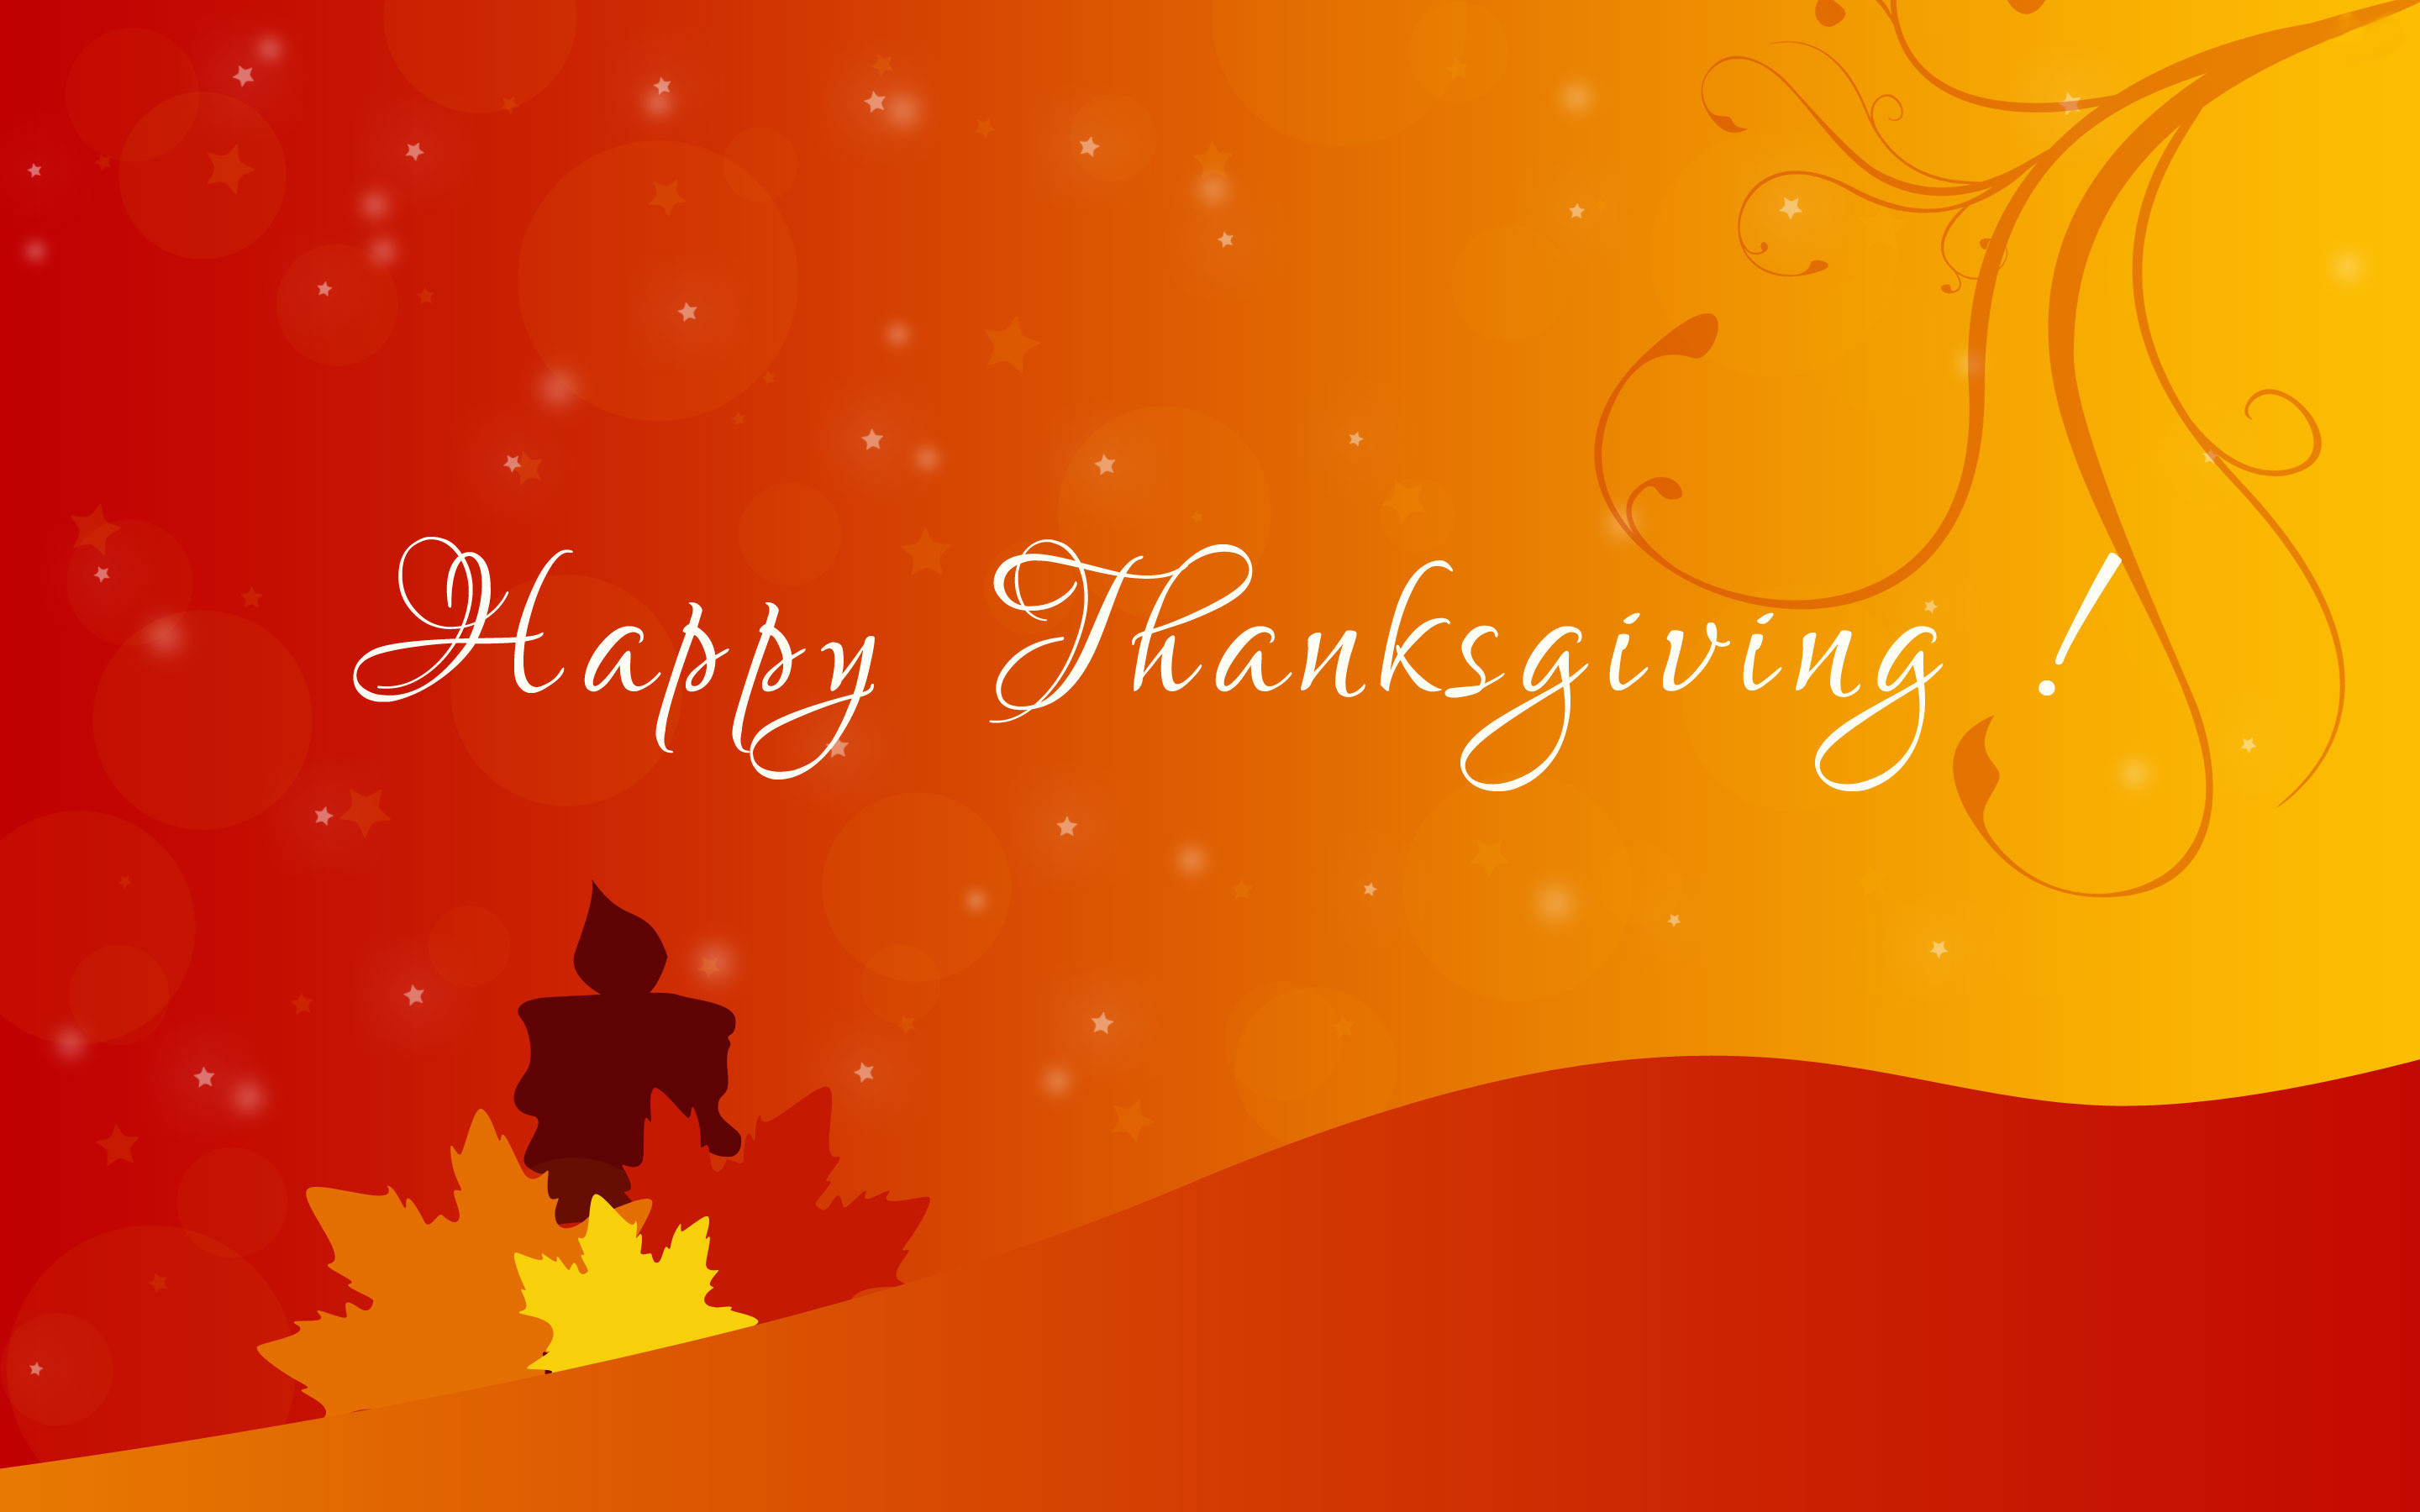 2880x1800 Thanksgiving Widescreen Background